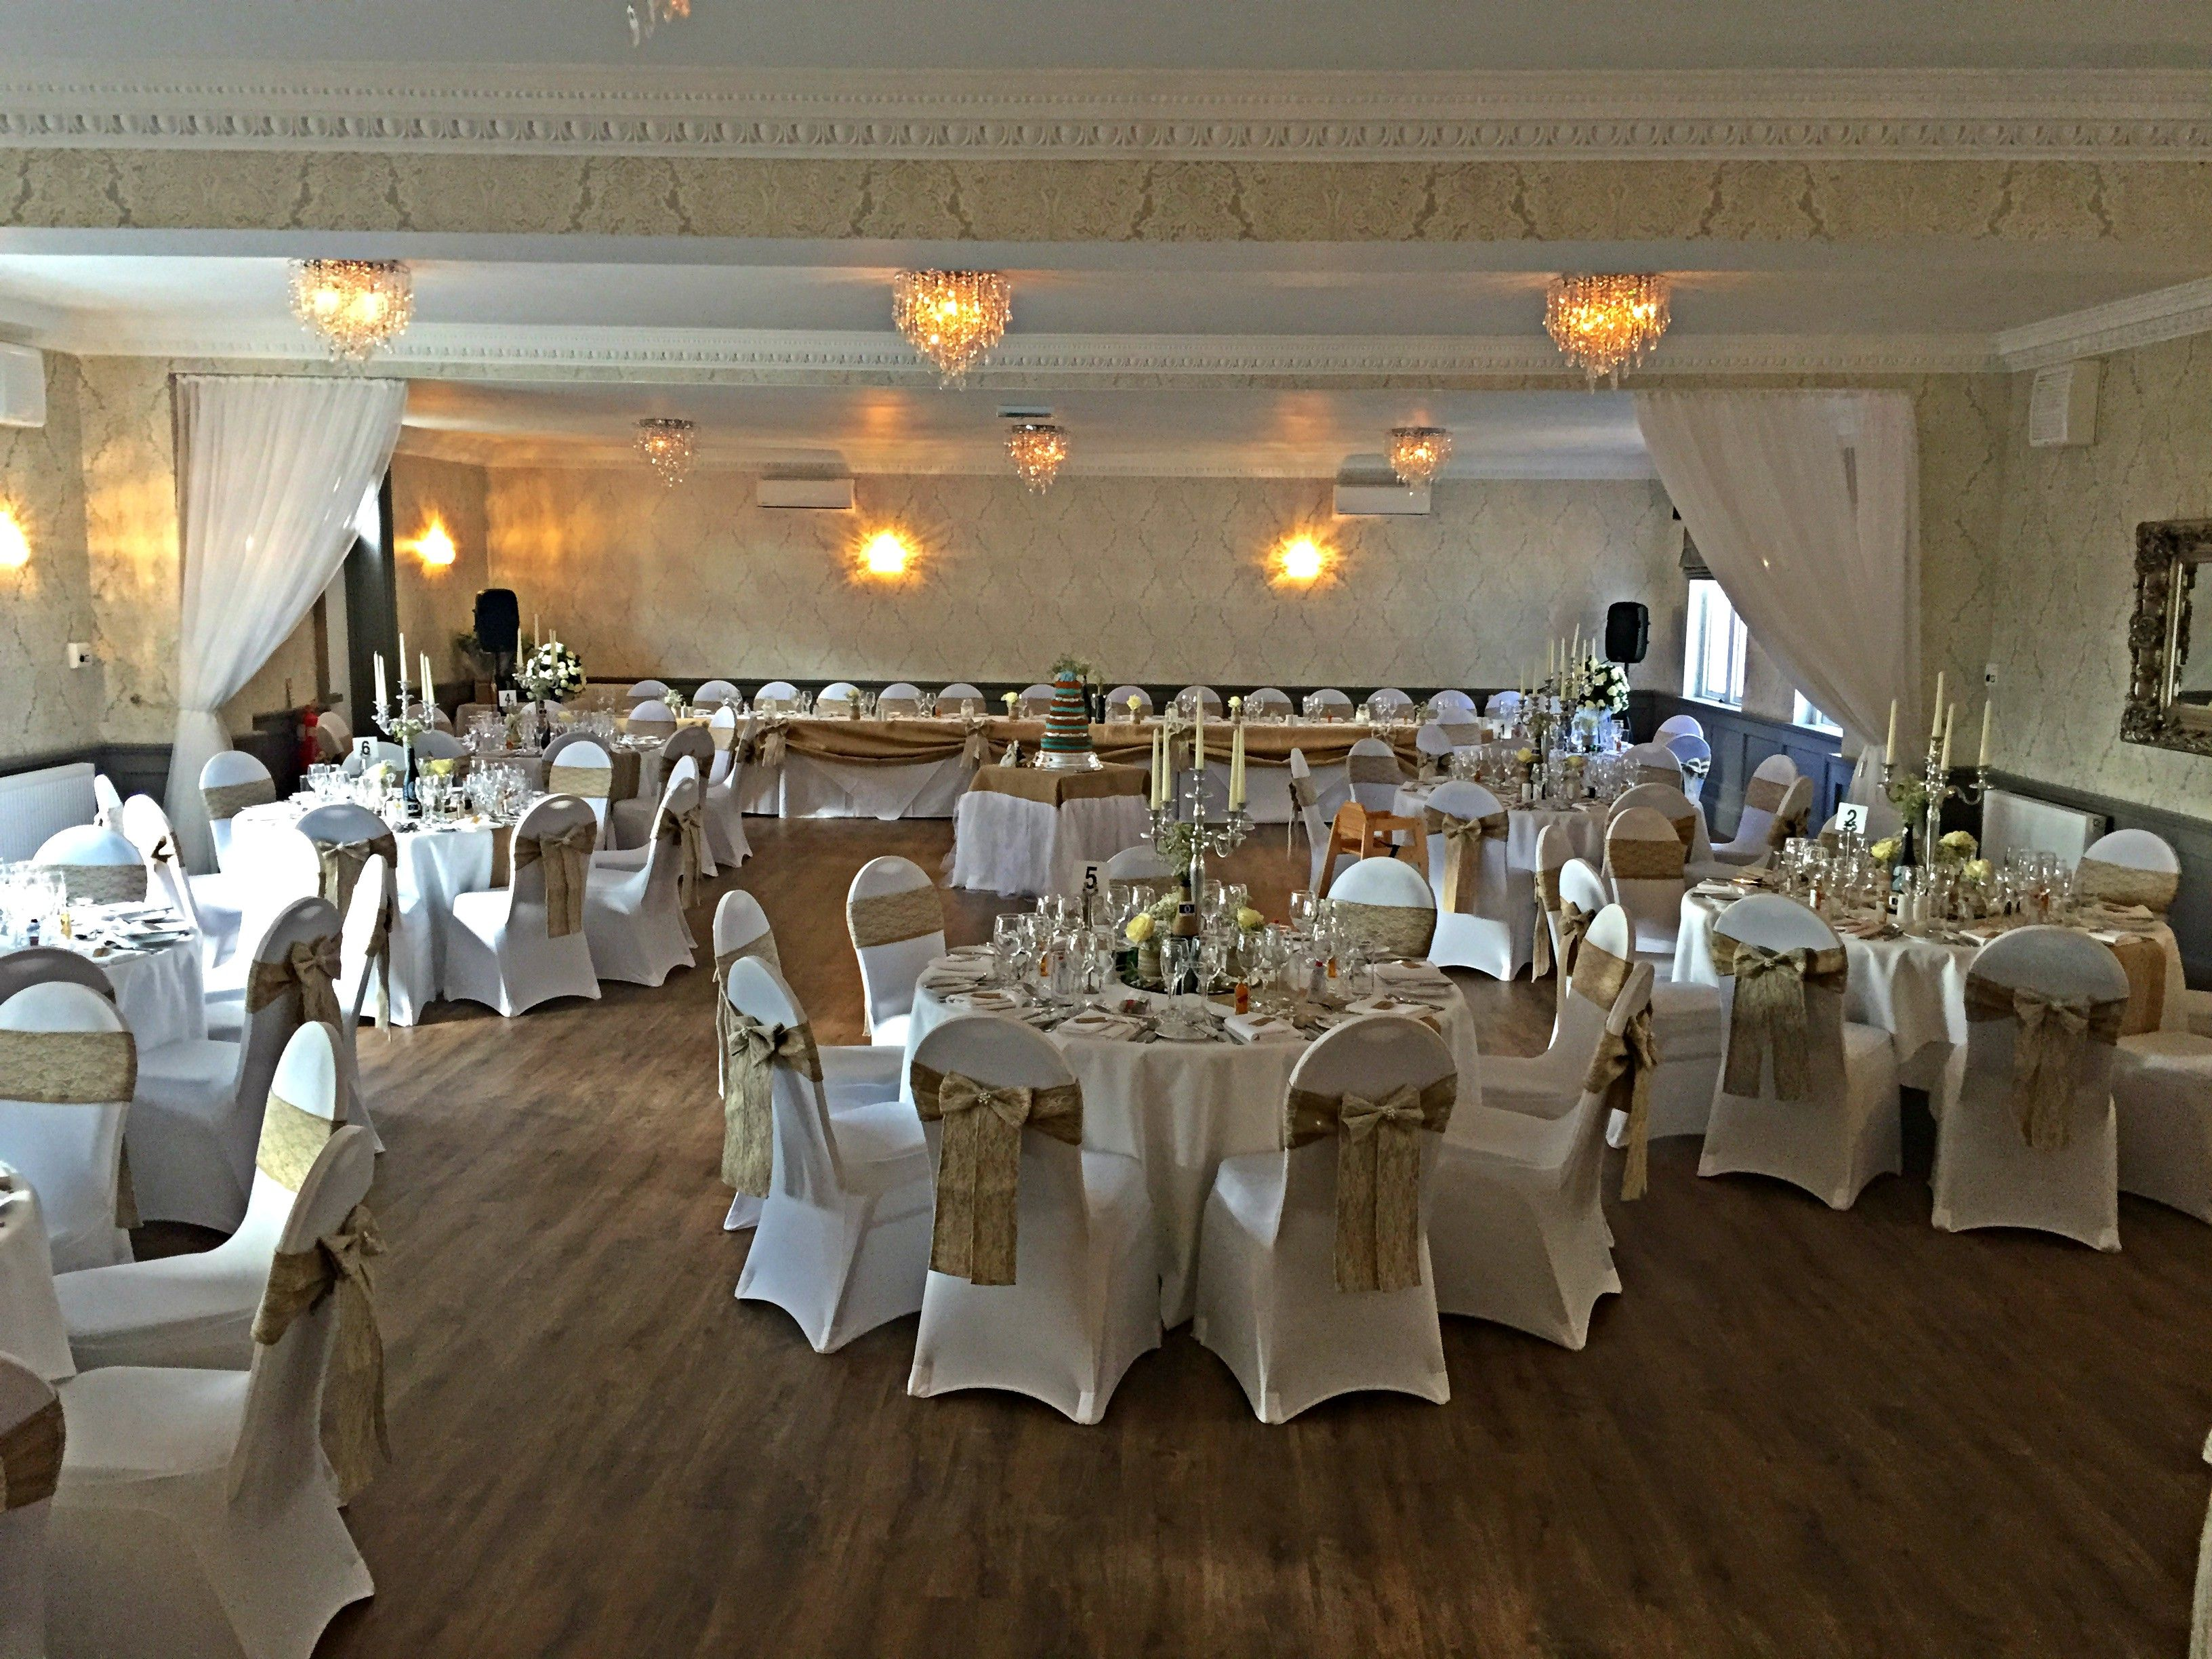 Our New Ballroom Set Up For A Wedding Boutique Spa Hotel Located In Alloa Near Stirling